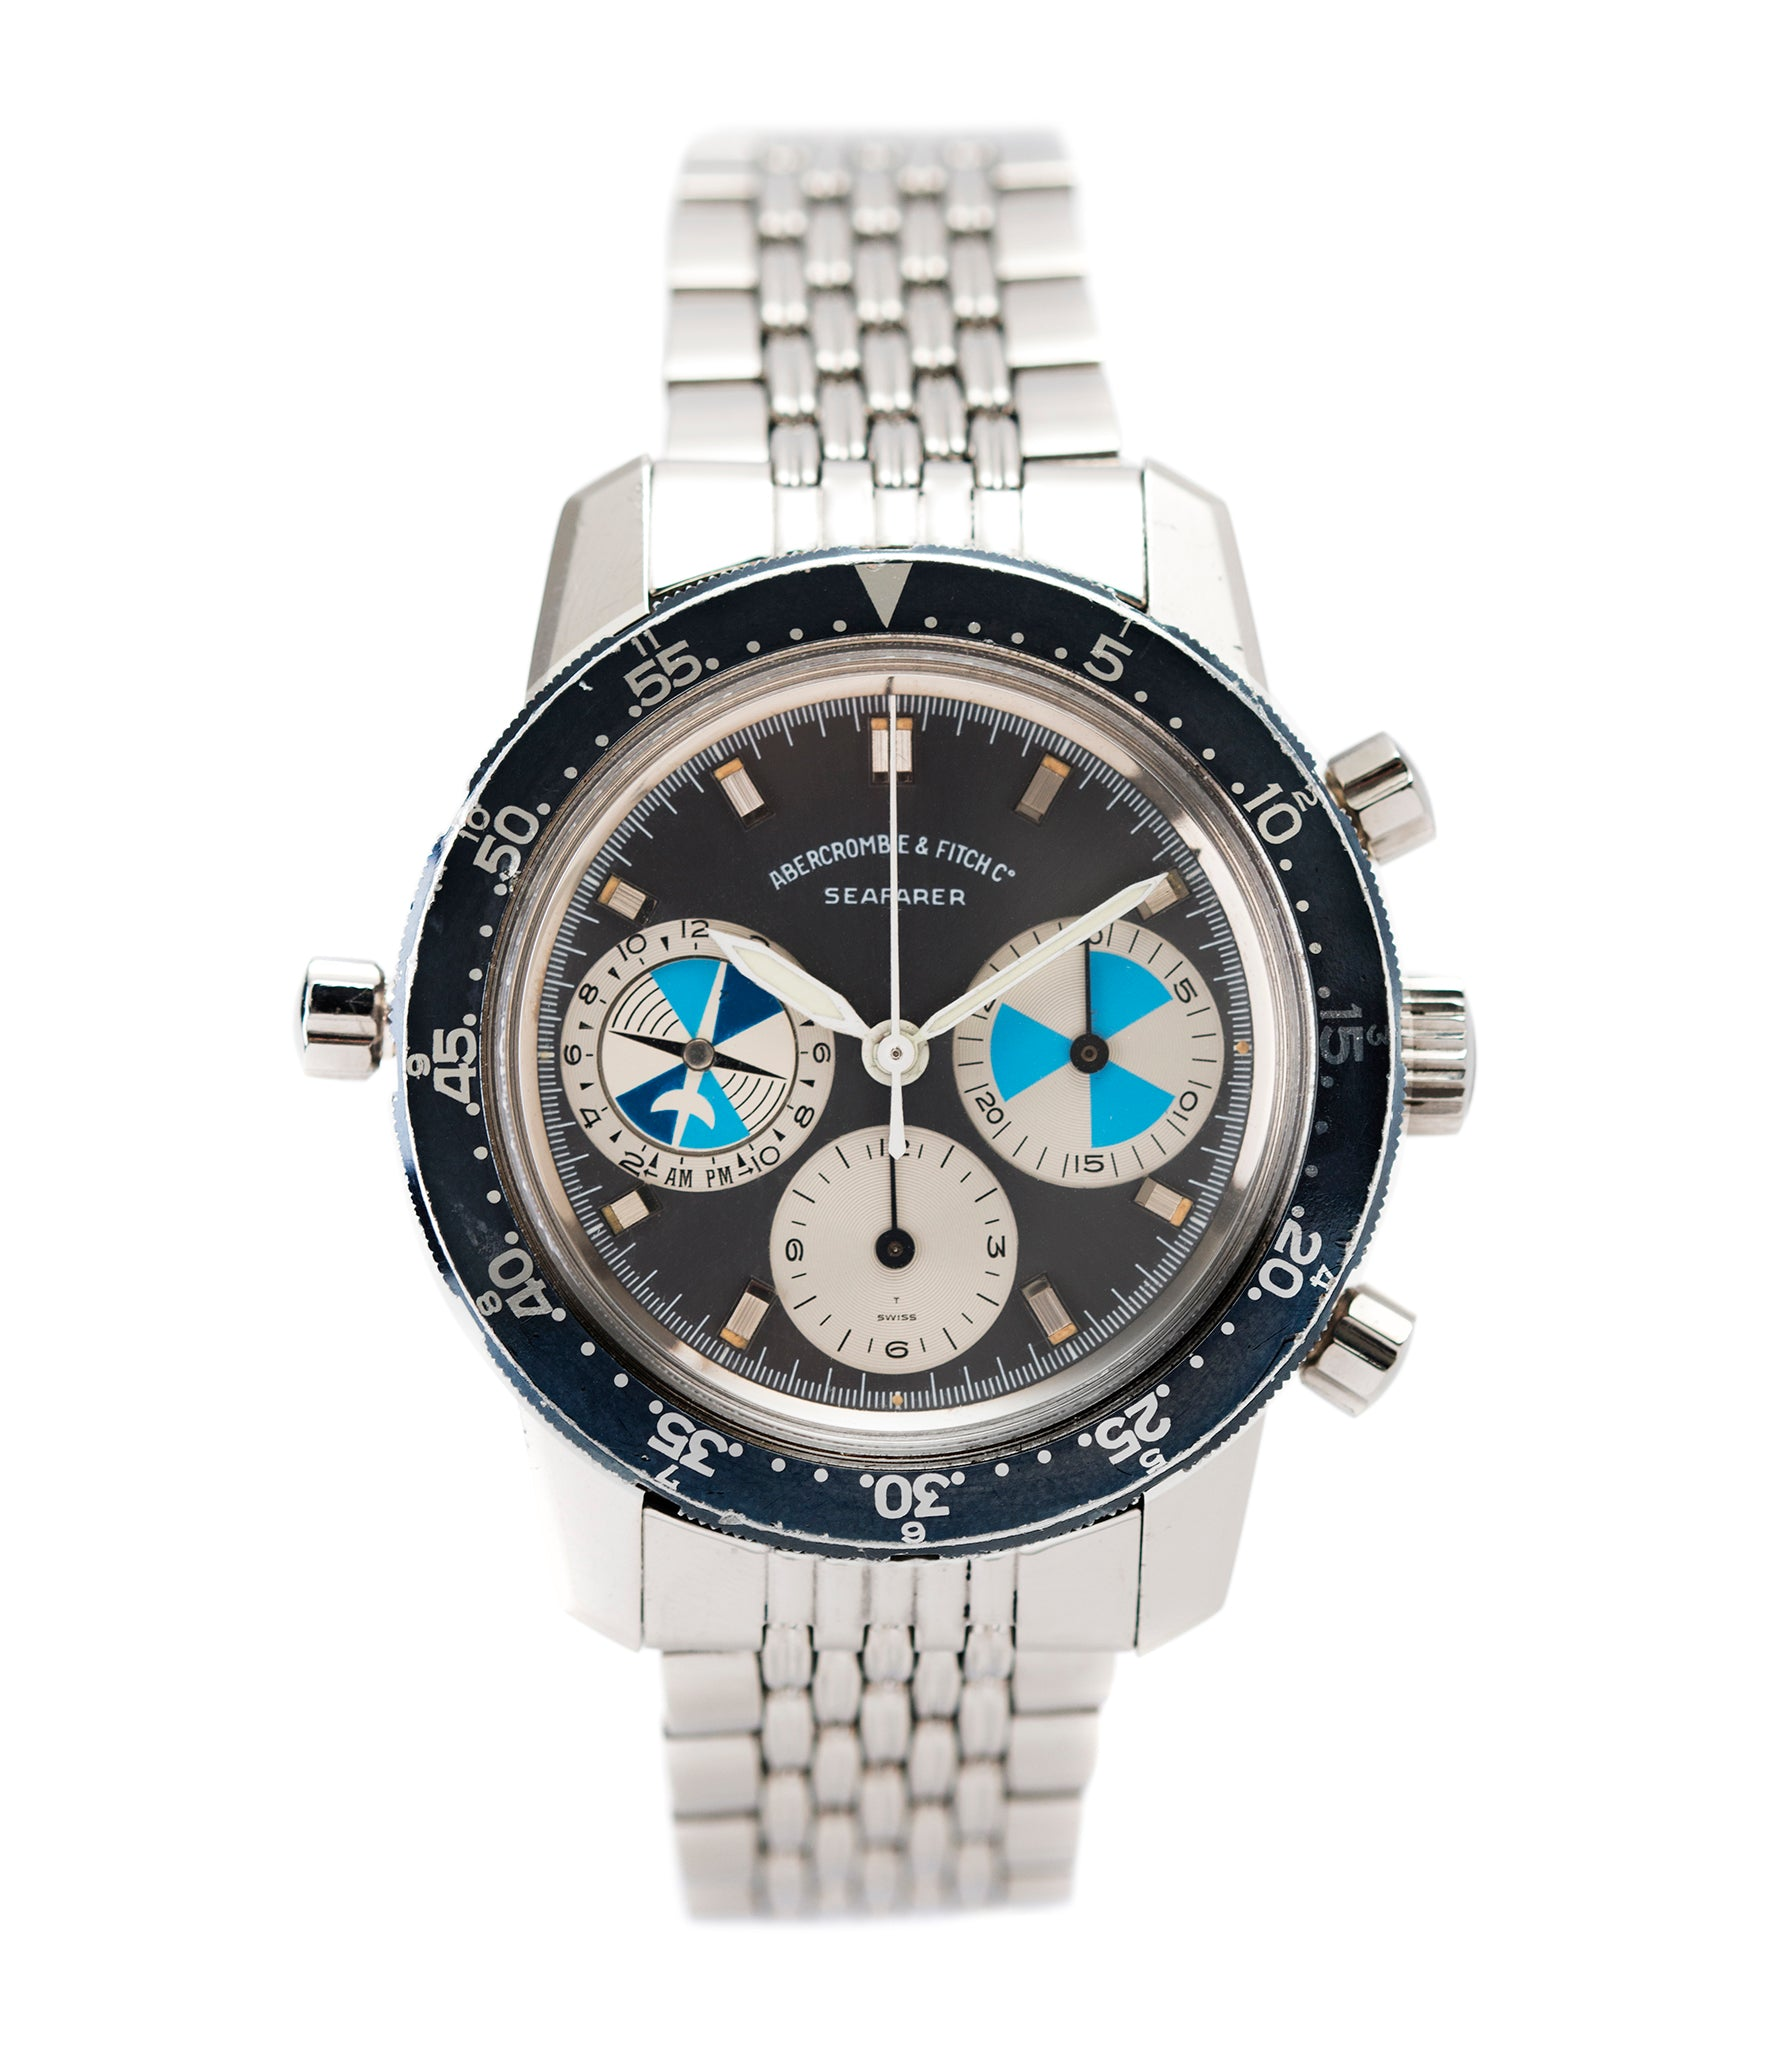 buy vintage Heuer Abercrombie & Fitch Seafarer 2446C SF rare chronograph watch for sale online at A Collected Man London UK specialist of rare vintage watches